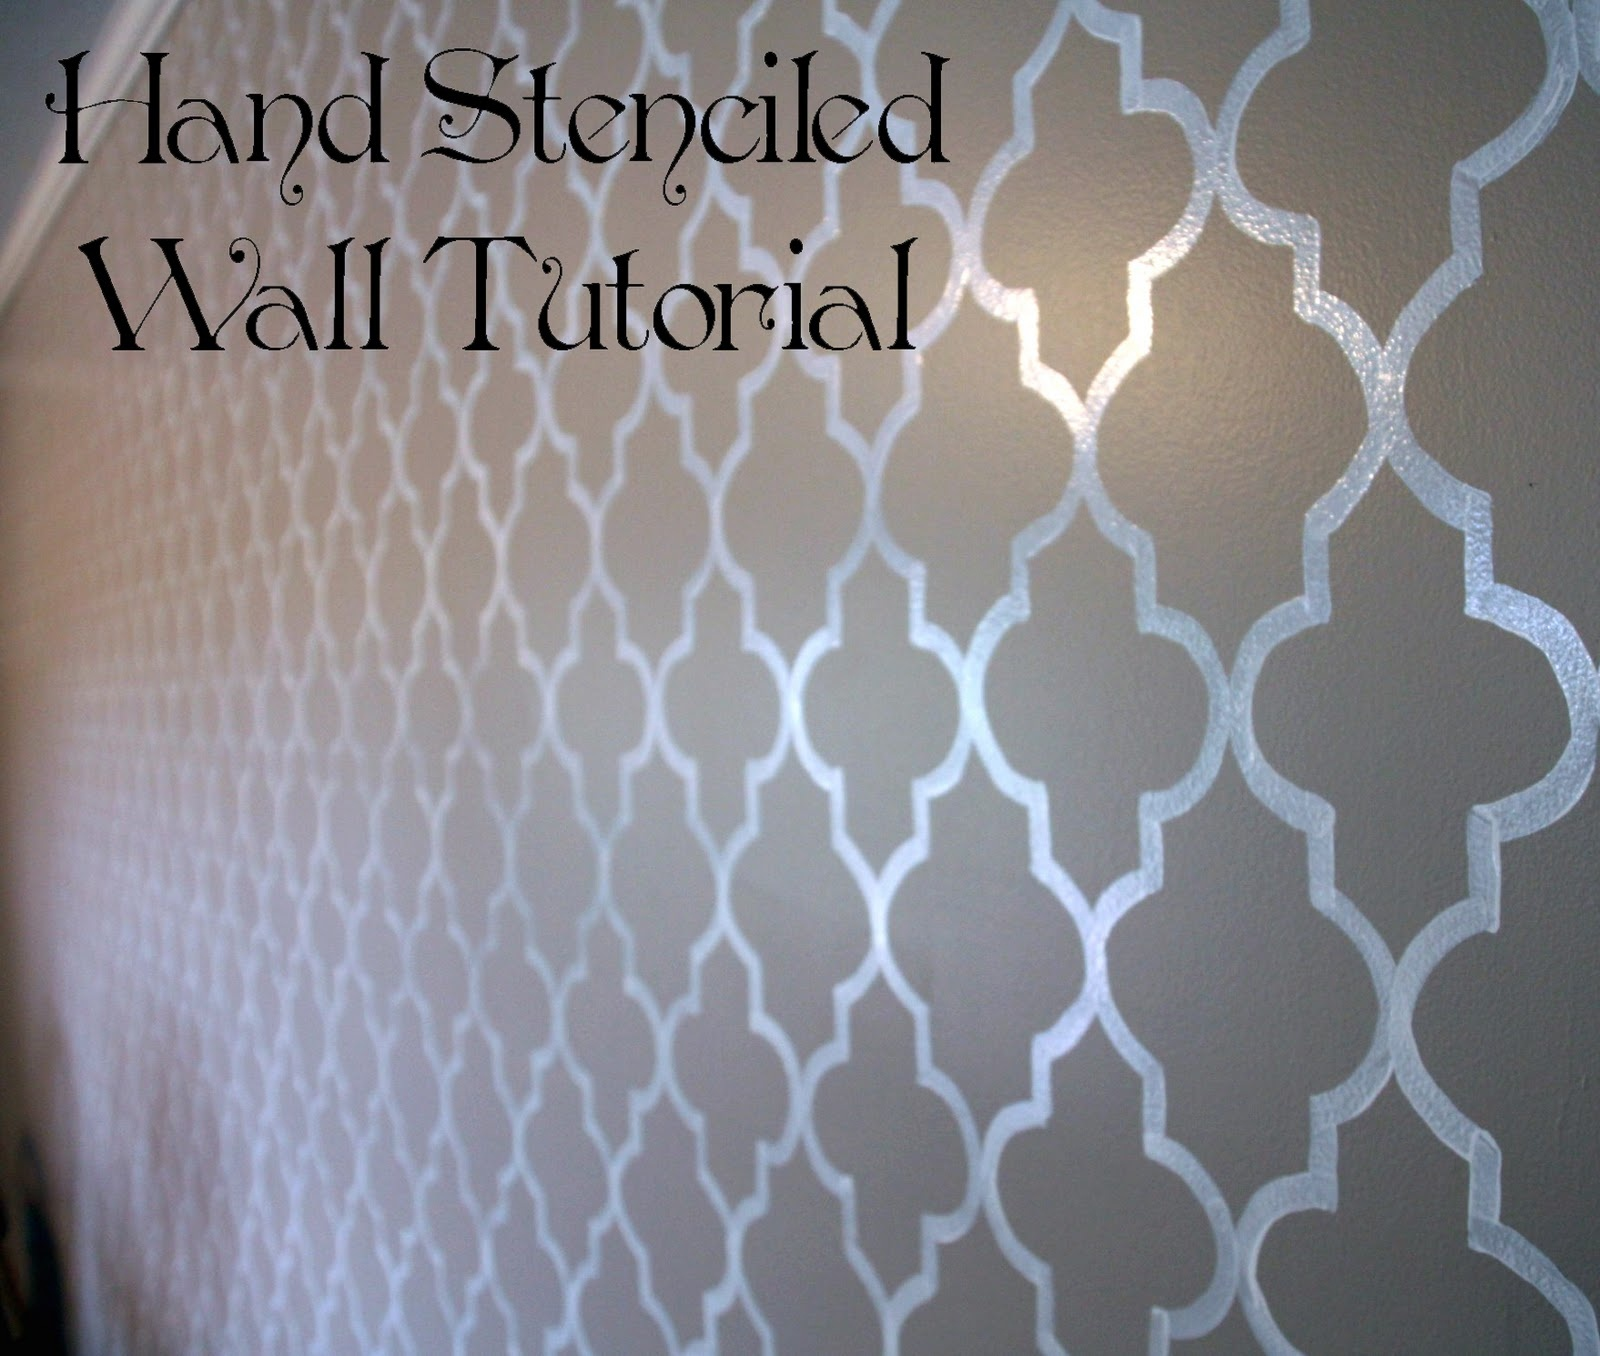 Wall Paint Stencil - Pmpresssecretariat - Free Printable Wall Stencils For Painting